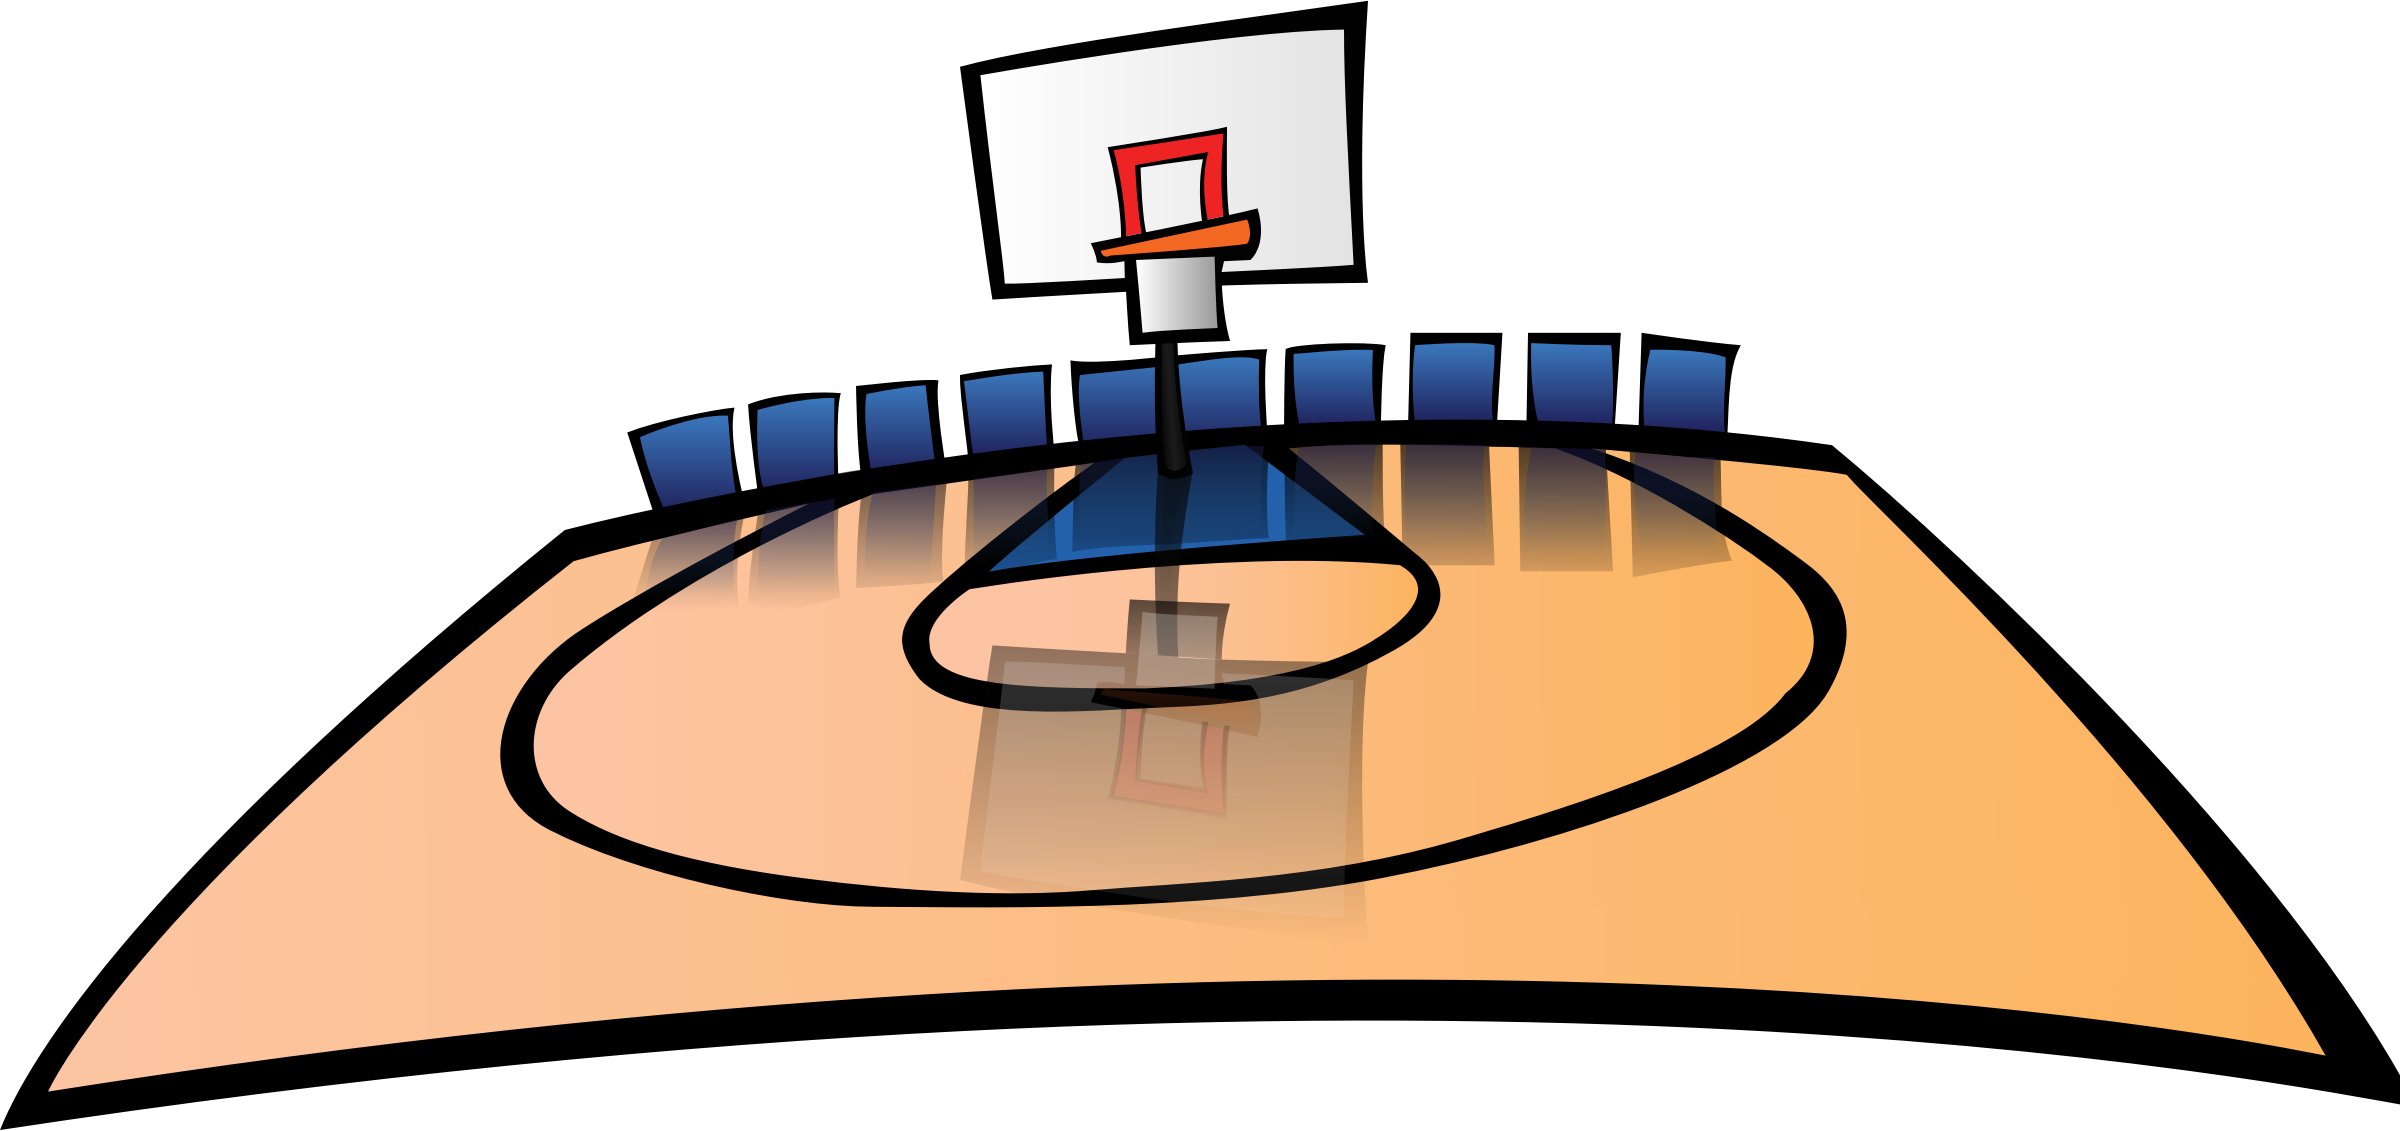 Basketball big image png. Court clipart court order